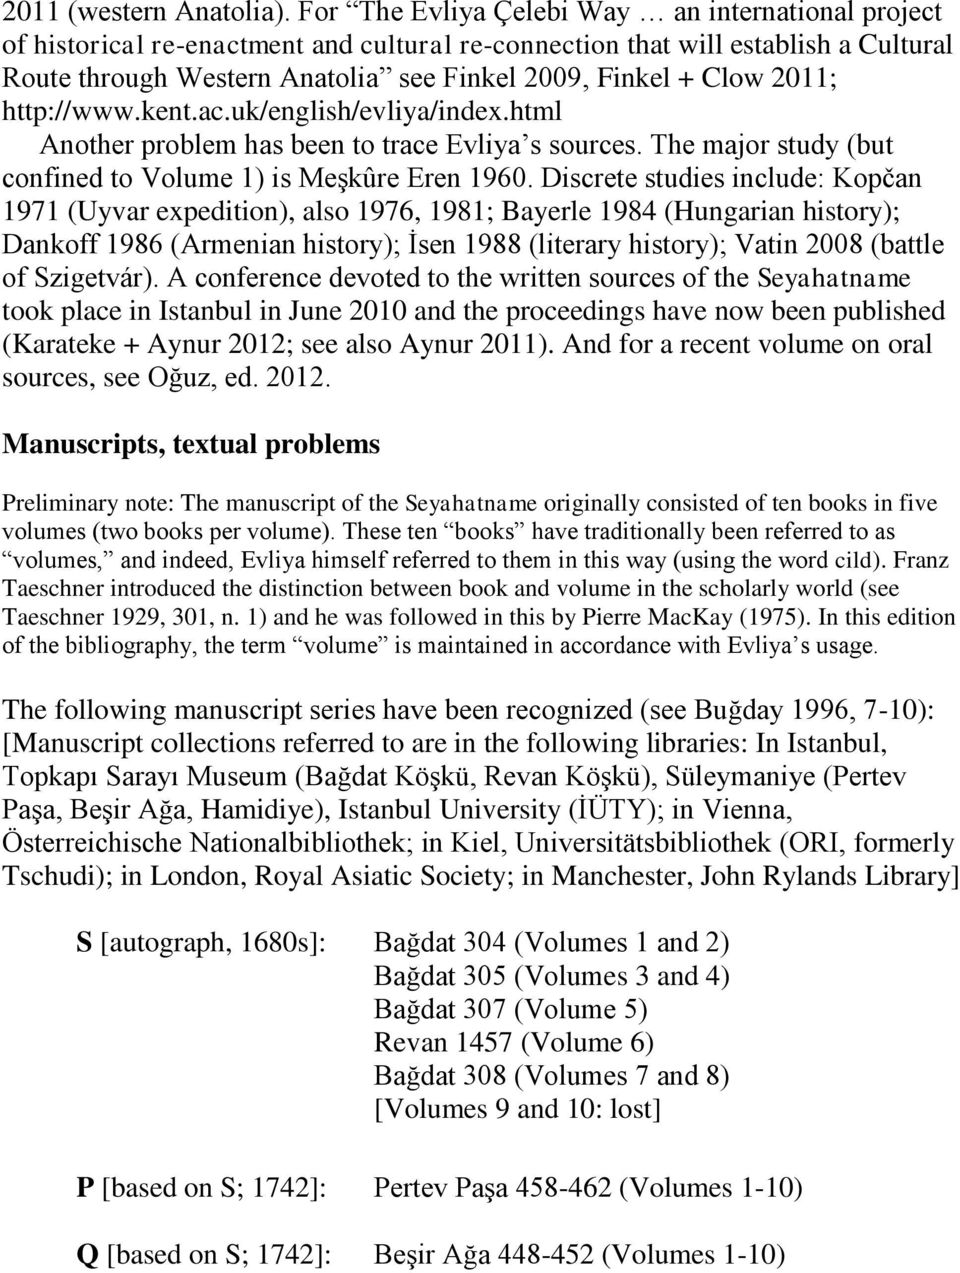 2011; http://www.kent.ac.uk/english/evliya/index.html Another problem has been to trace Evliya s sources. The major study (but confined to Volume 1) is Meşkûre Eren 1960.